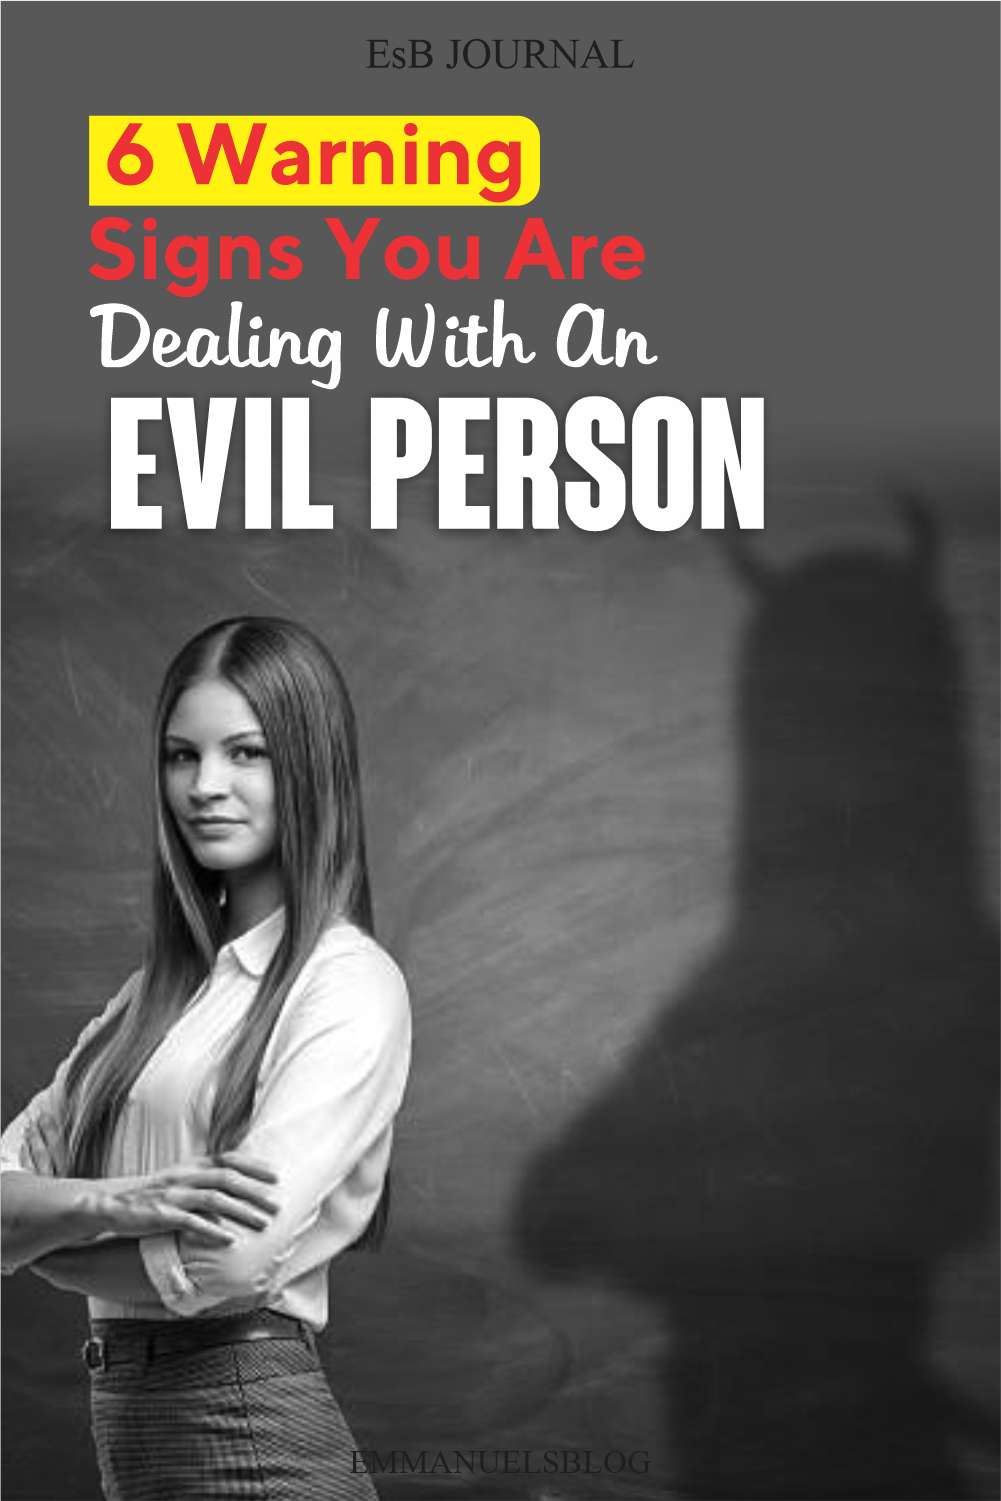 6 Warning Signs You Are Dealing With An Evil Person